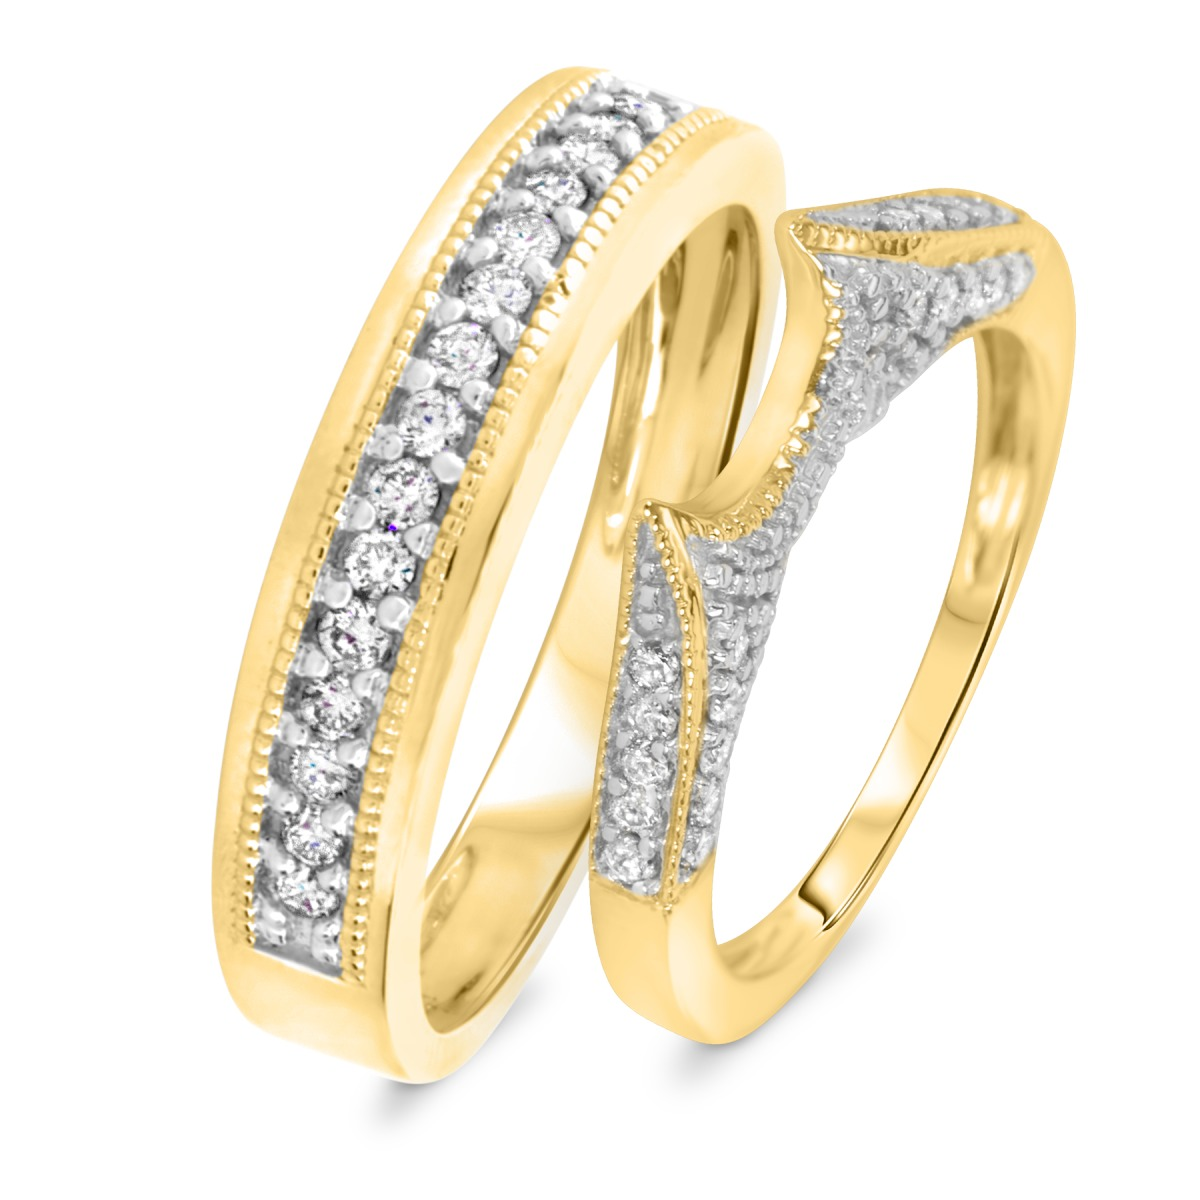 1/2 CT. T.W. Diamond His And Hers Wedding Rings 10K Yellow Gold